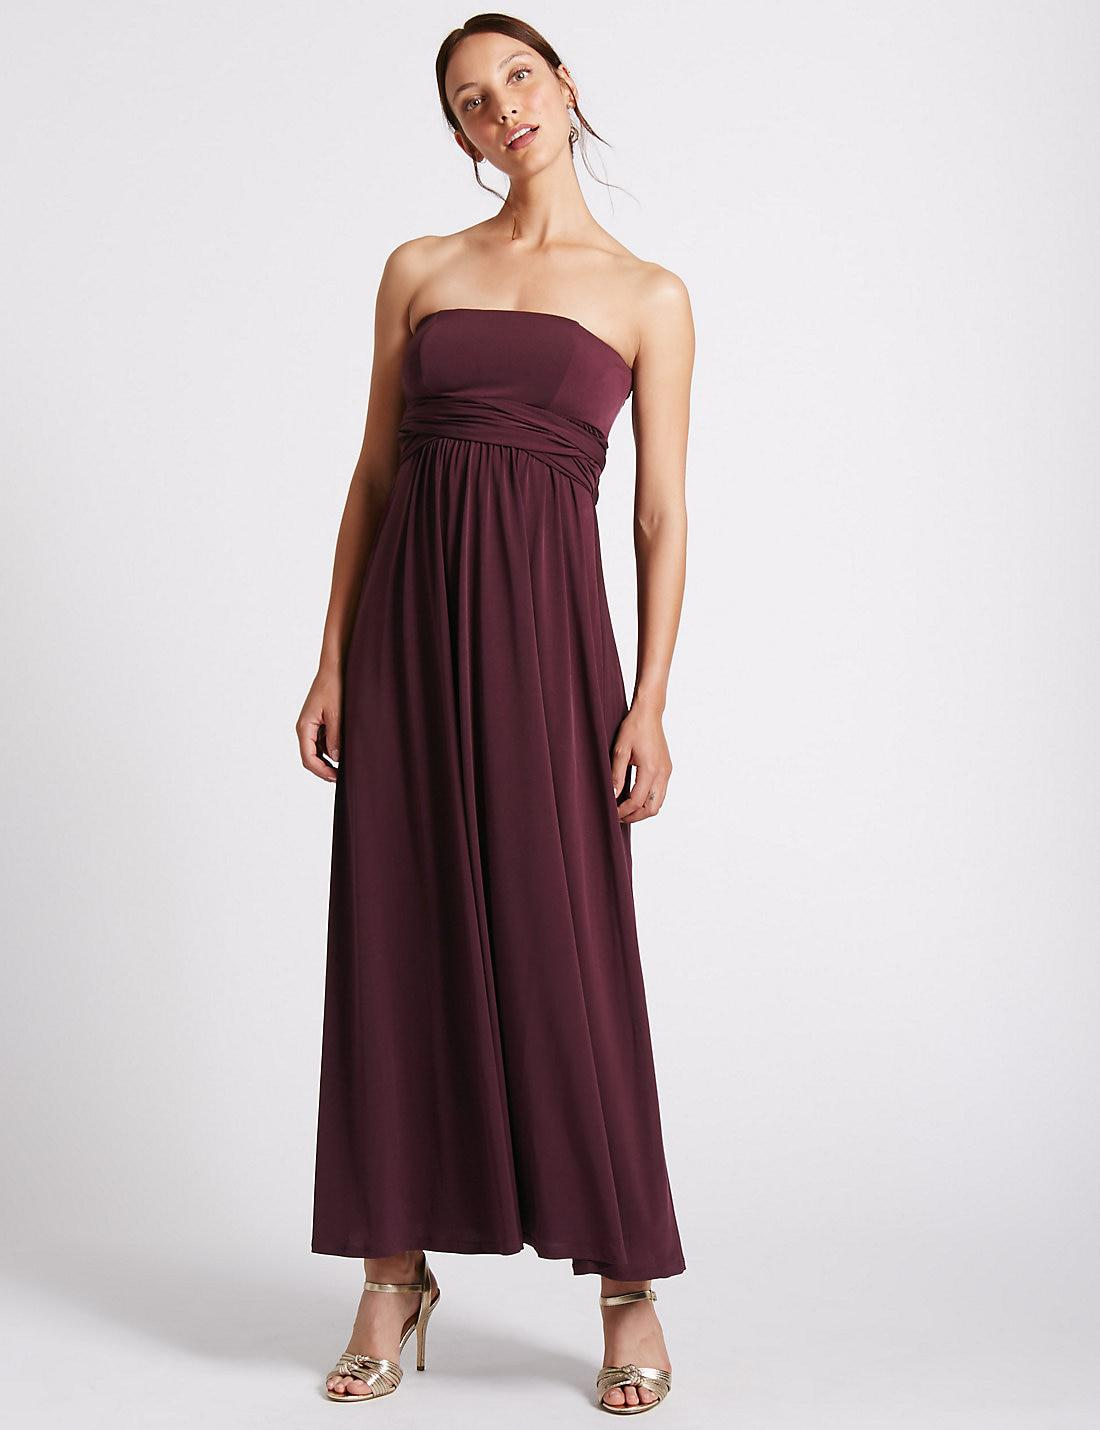 Lyst - Marks & spencer Multiway Maxi Dress in Purple